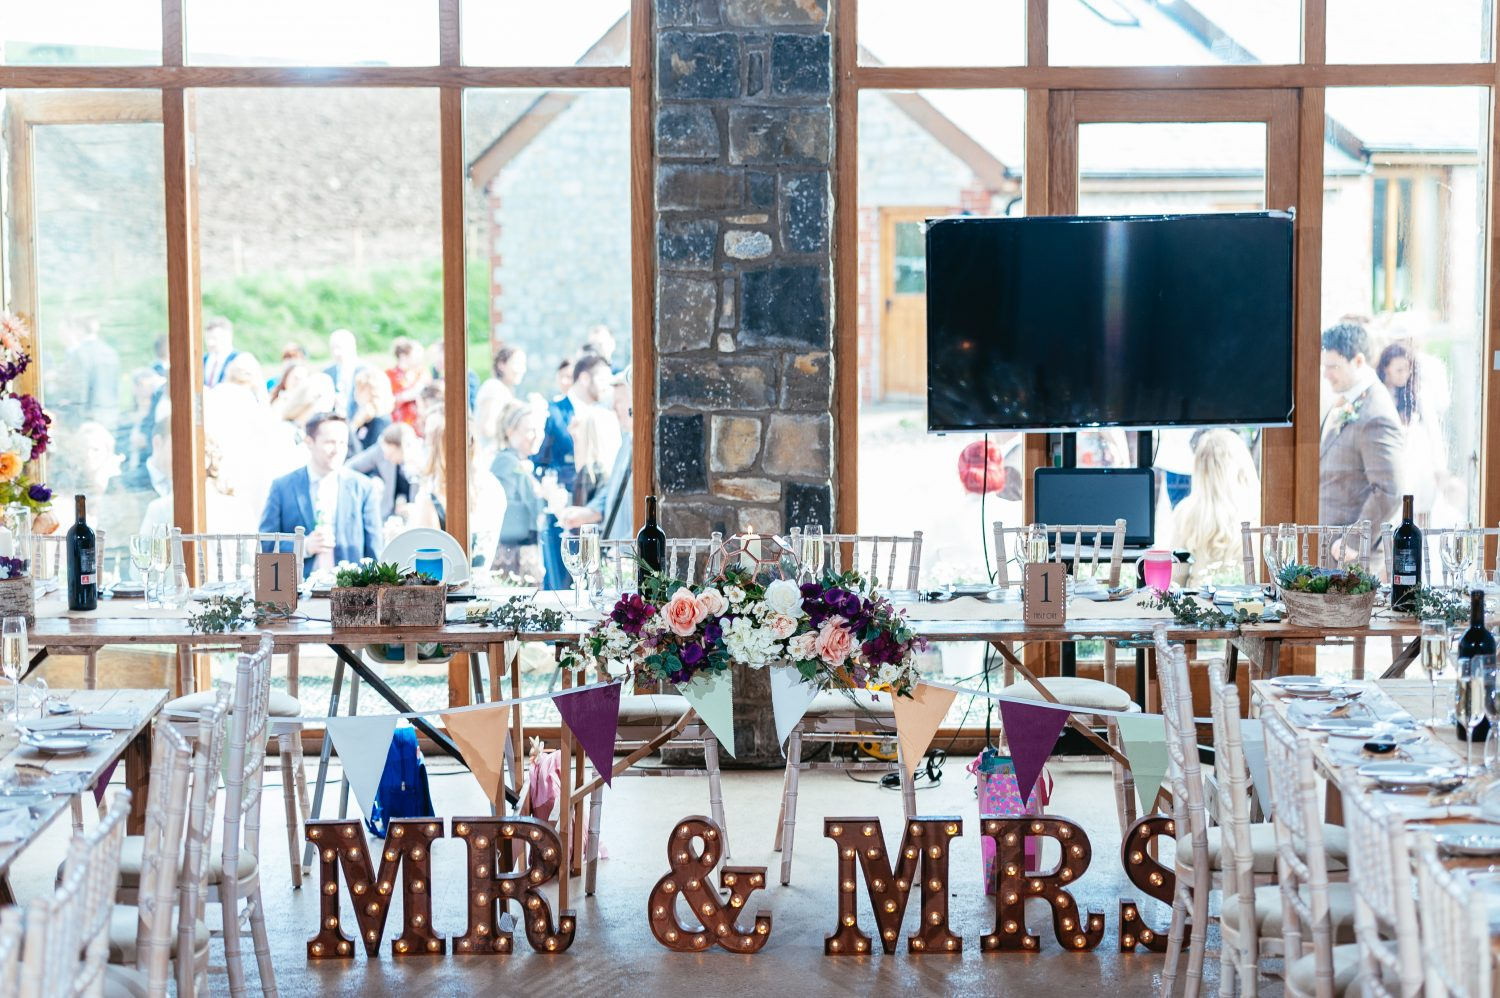 The Top Table Set up in the Farmer's Barn by South Wales Wedding Photographers